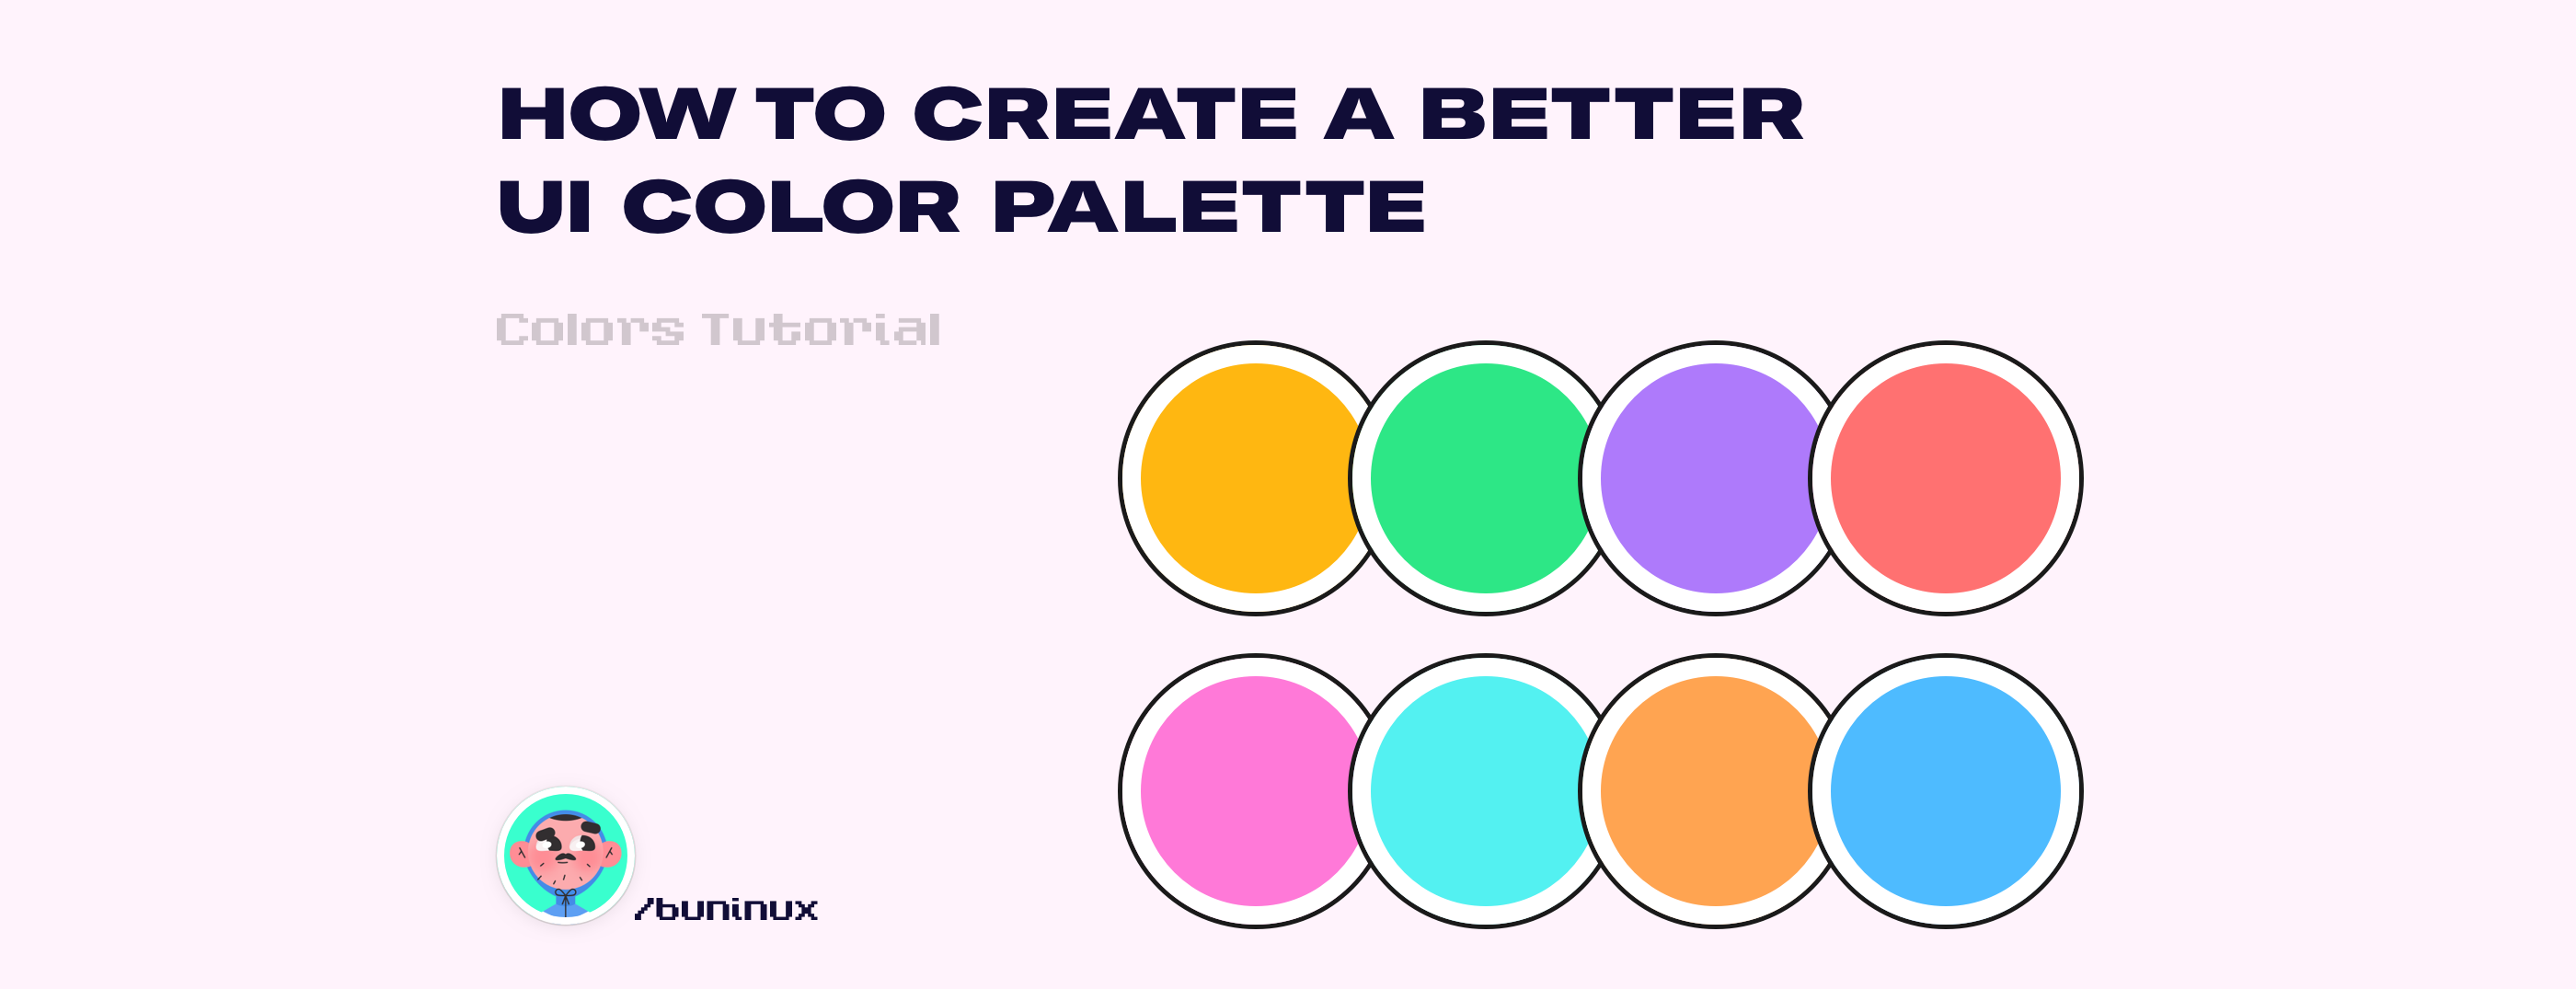 Buninux—How to create a better UI color palette.